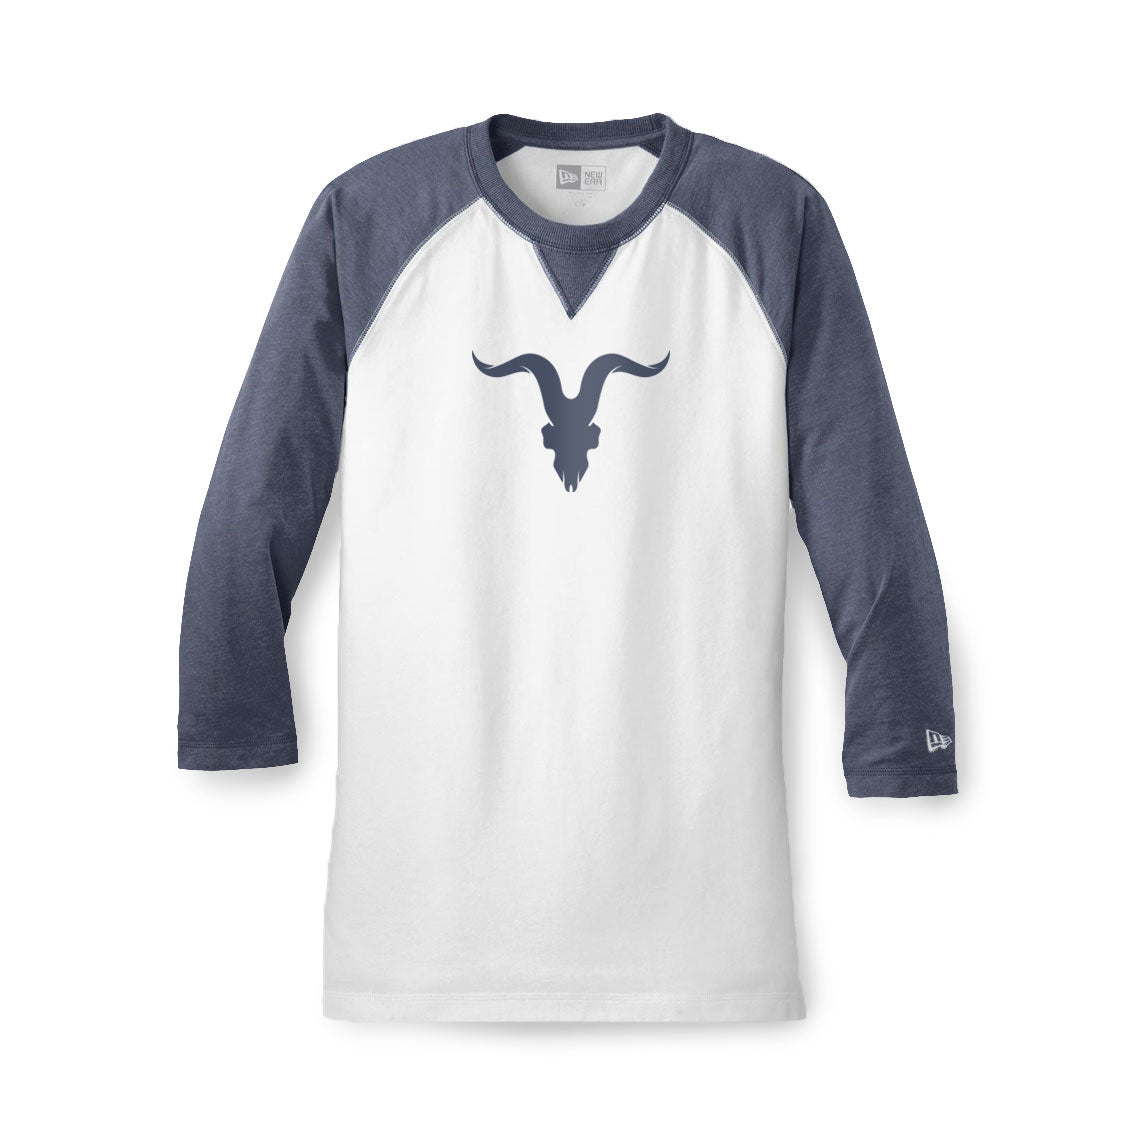 Ignite Premium Collection Raglan Baseball Tees - Navy Blue Sleeves